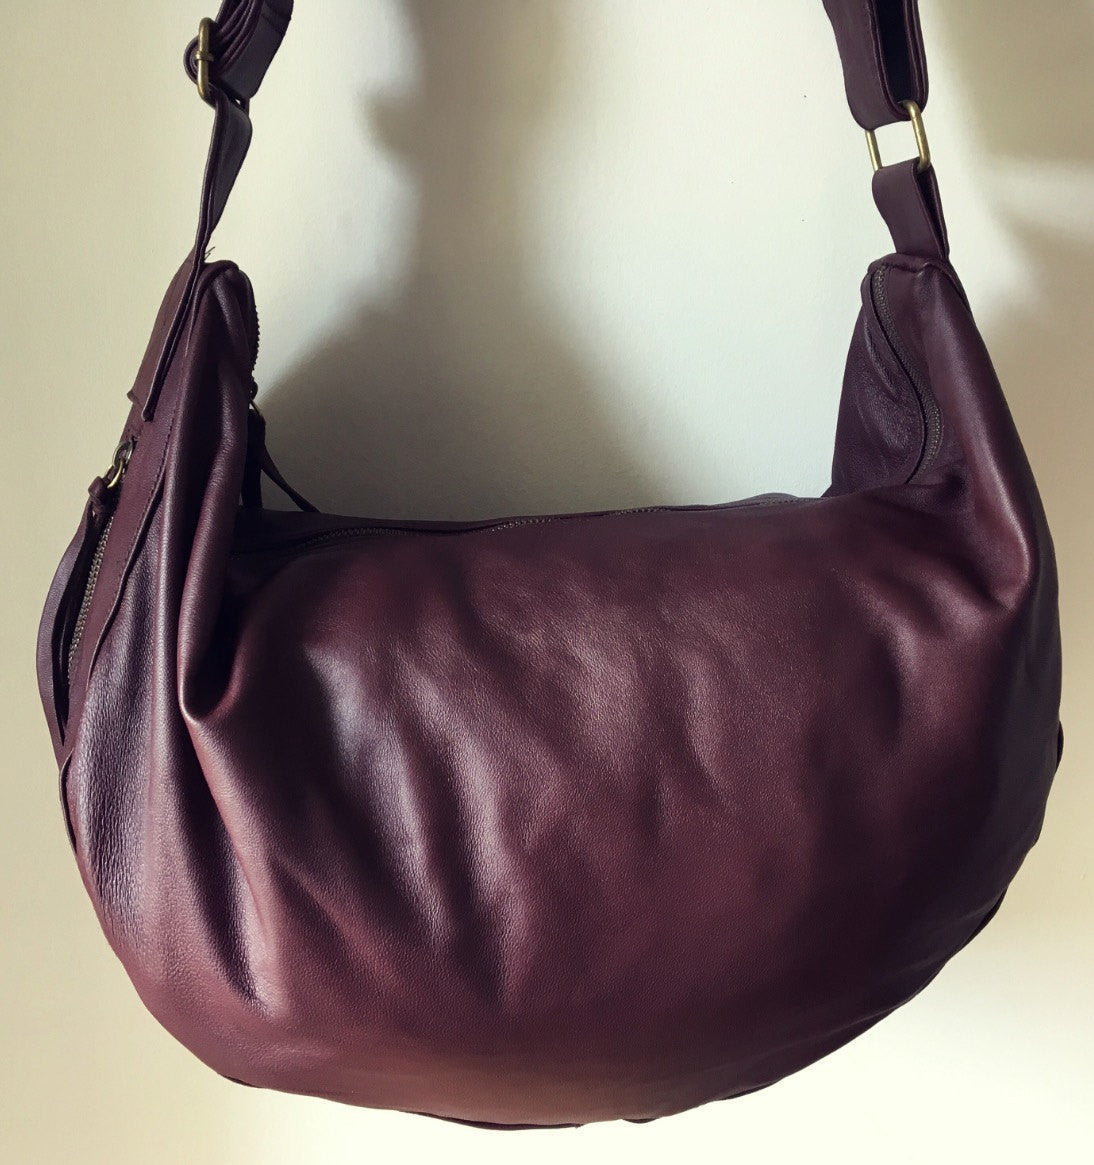 The Bend-Curved soft and slouchy handmade leather handbag